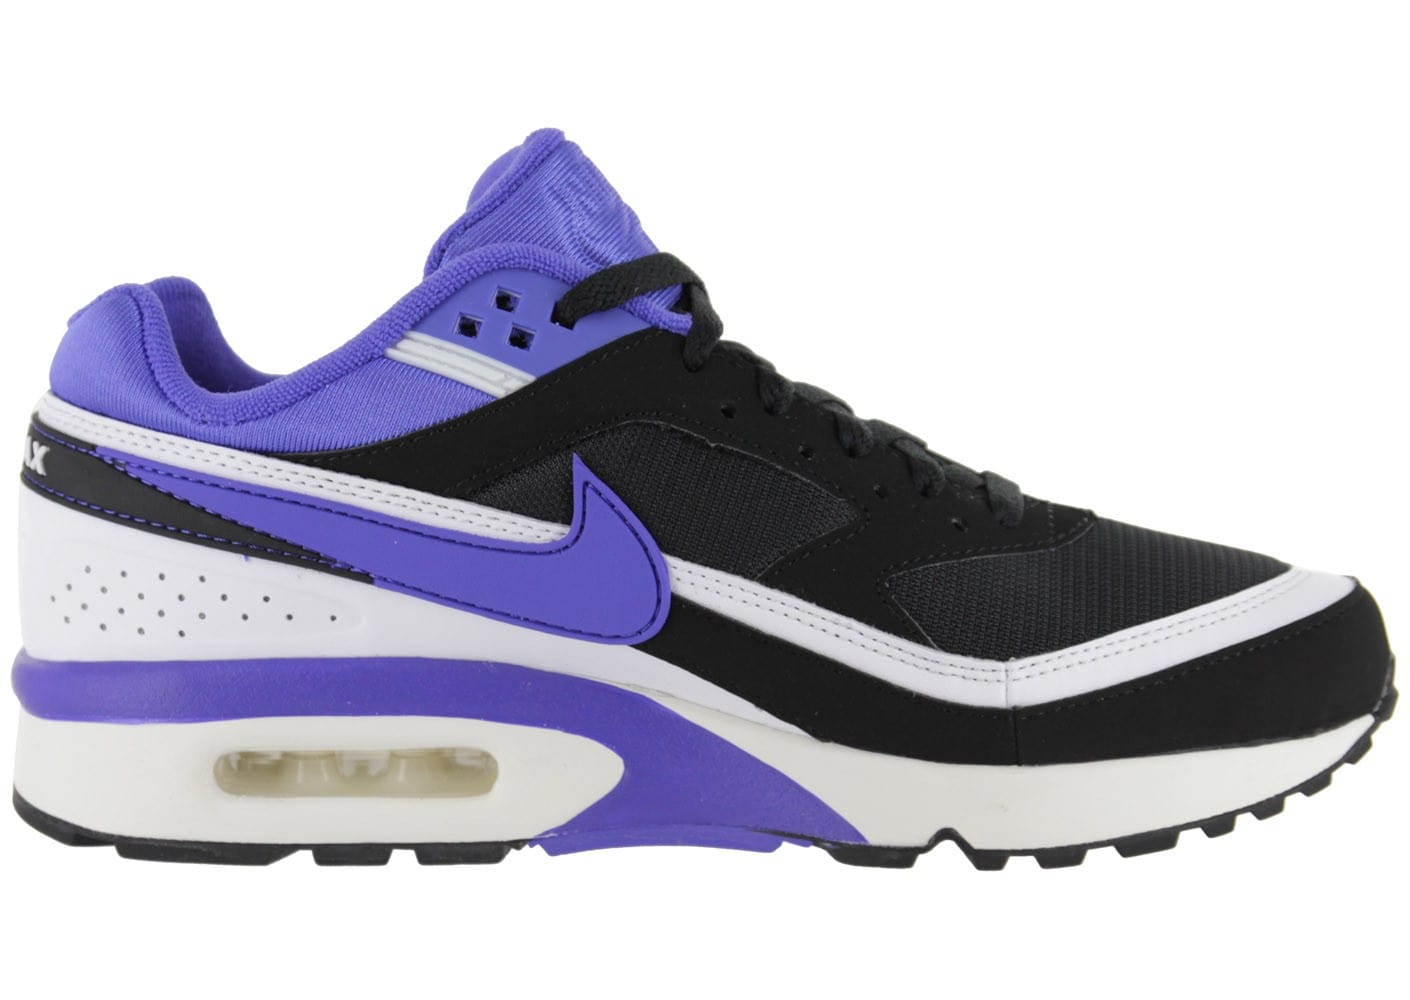 nike air max ltd chaussures à vendre - nike air max noir et violet   Learn to Read Music Course - How to ...